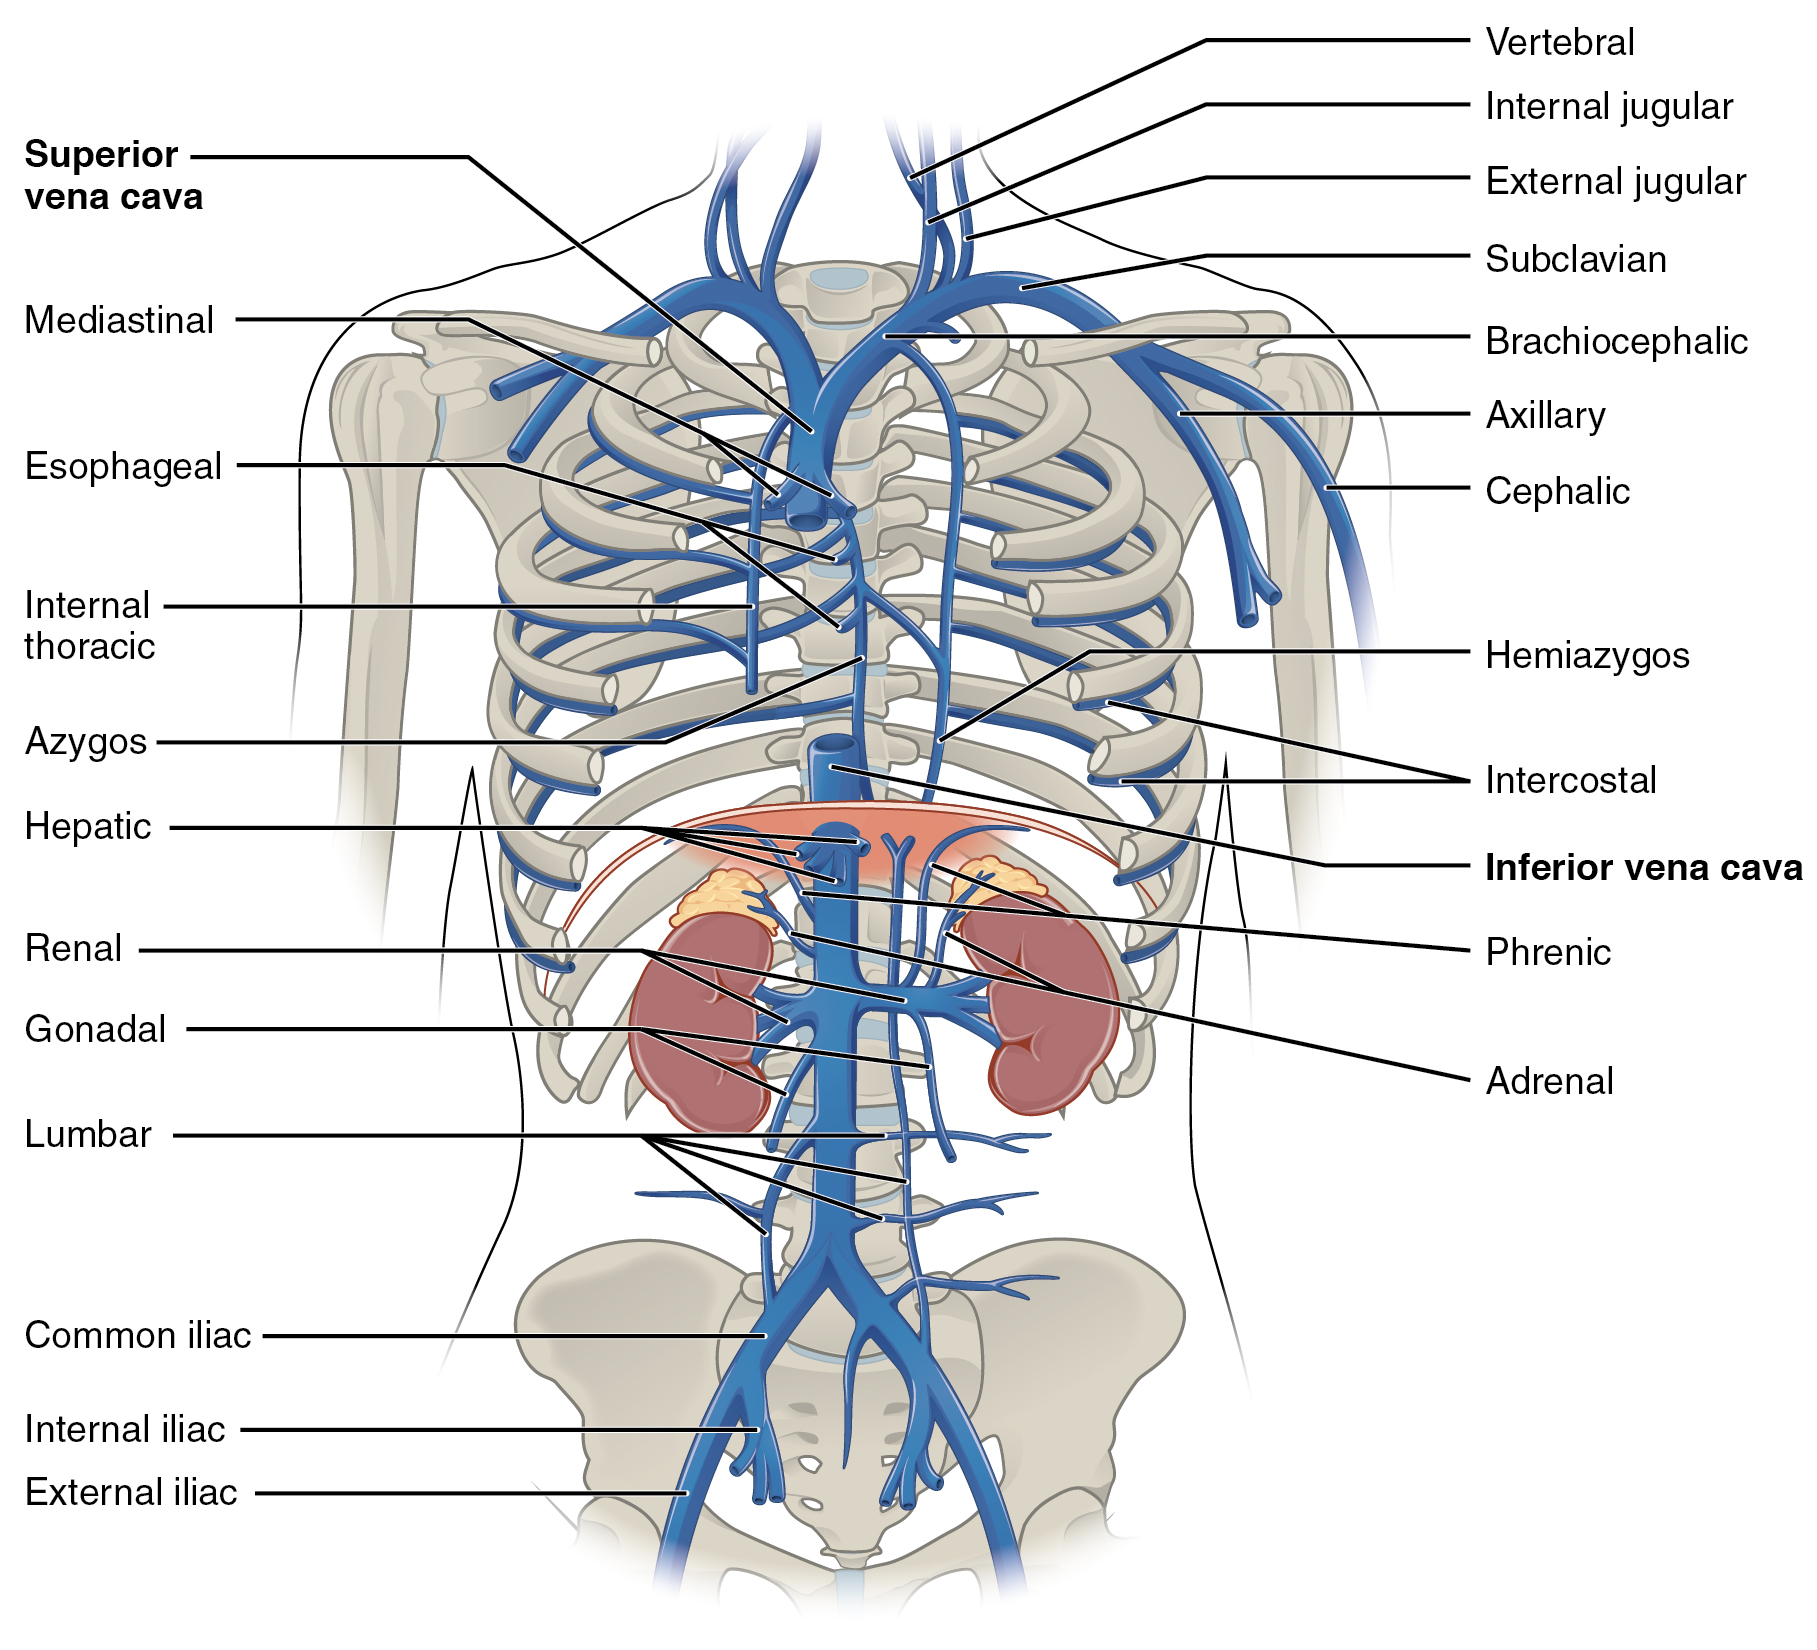 This diagram shows the veins present in the thoracic abdominal cavity.